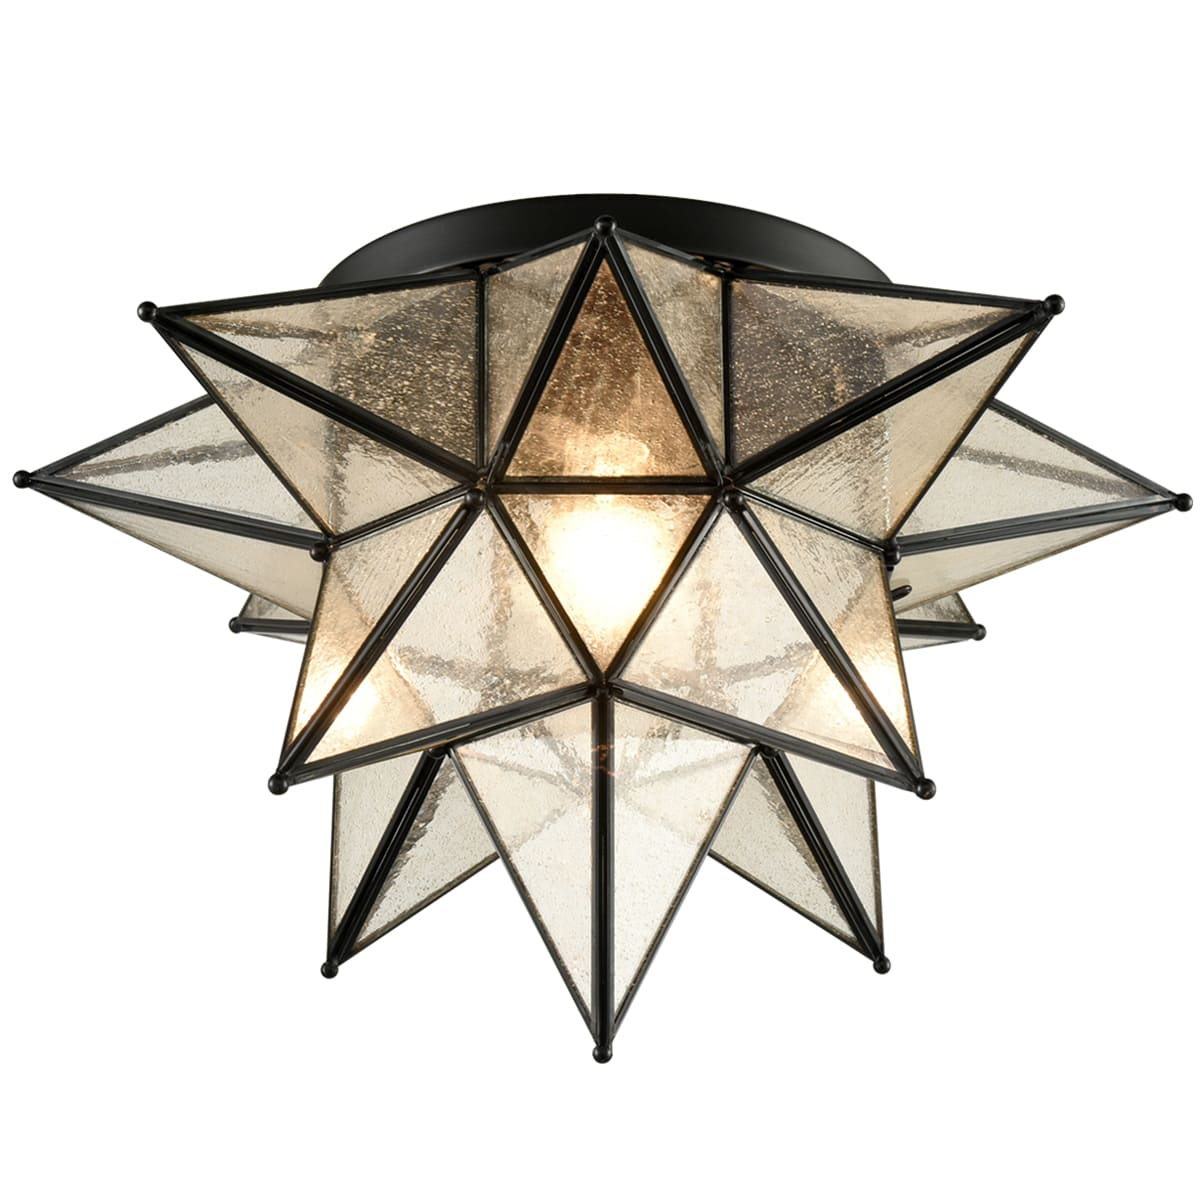 Seeded Glass Moravian Star Flush Mount Ceiling Light 18 Inch Black